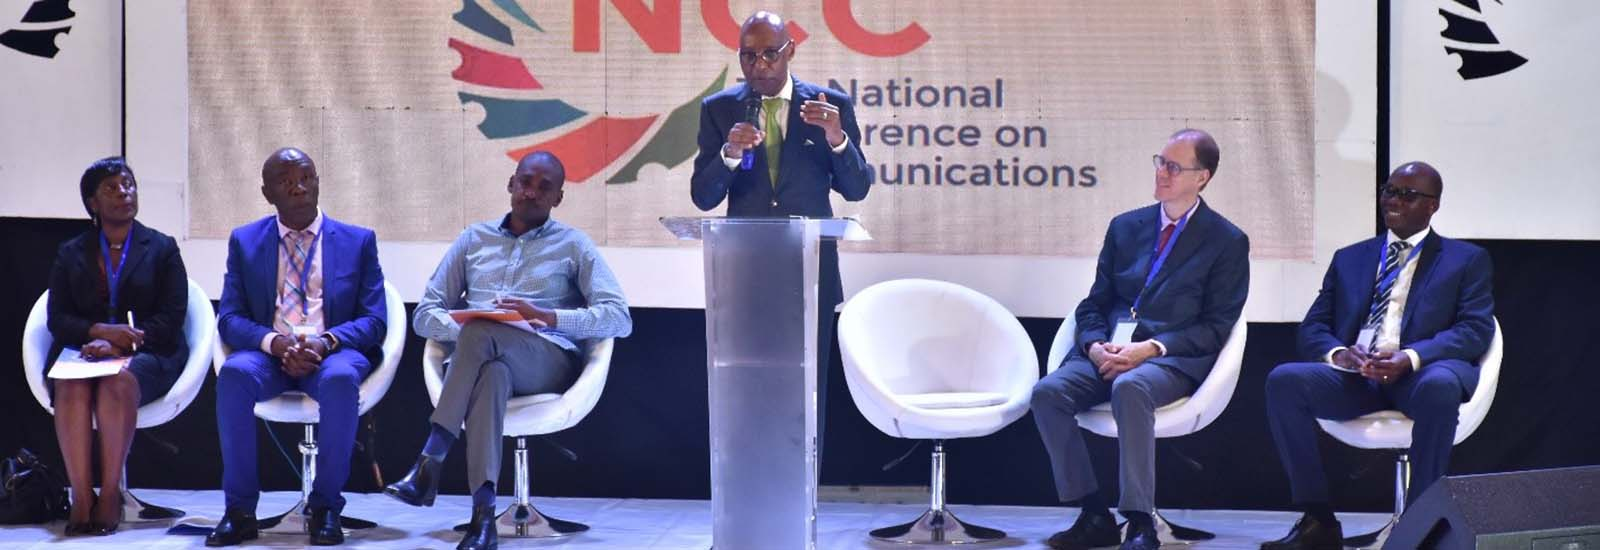 Makerere University to host the 6th National Conference on Communications (NCC2020)